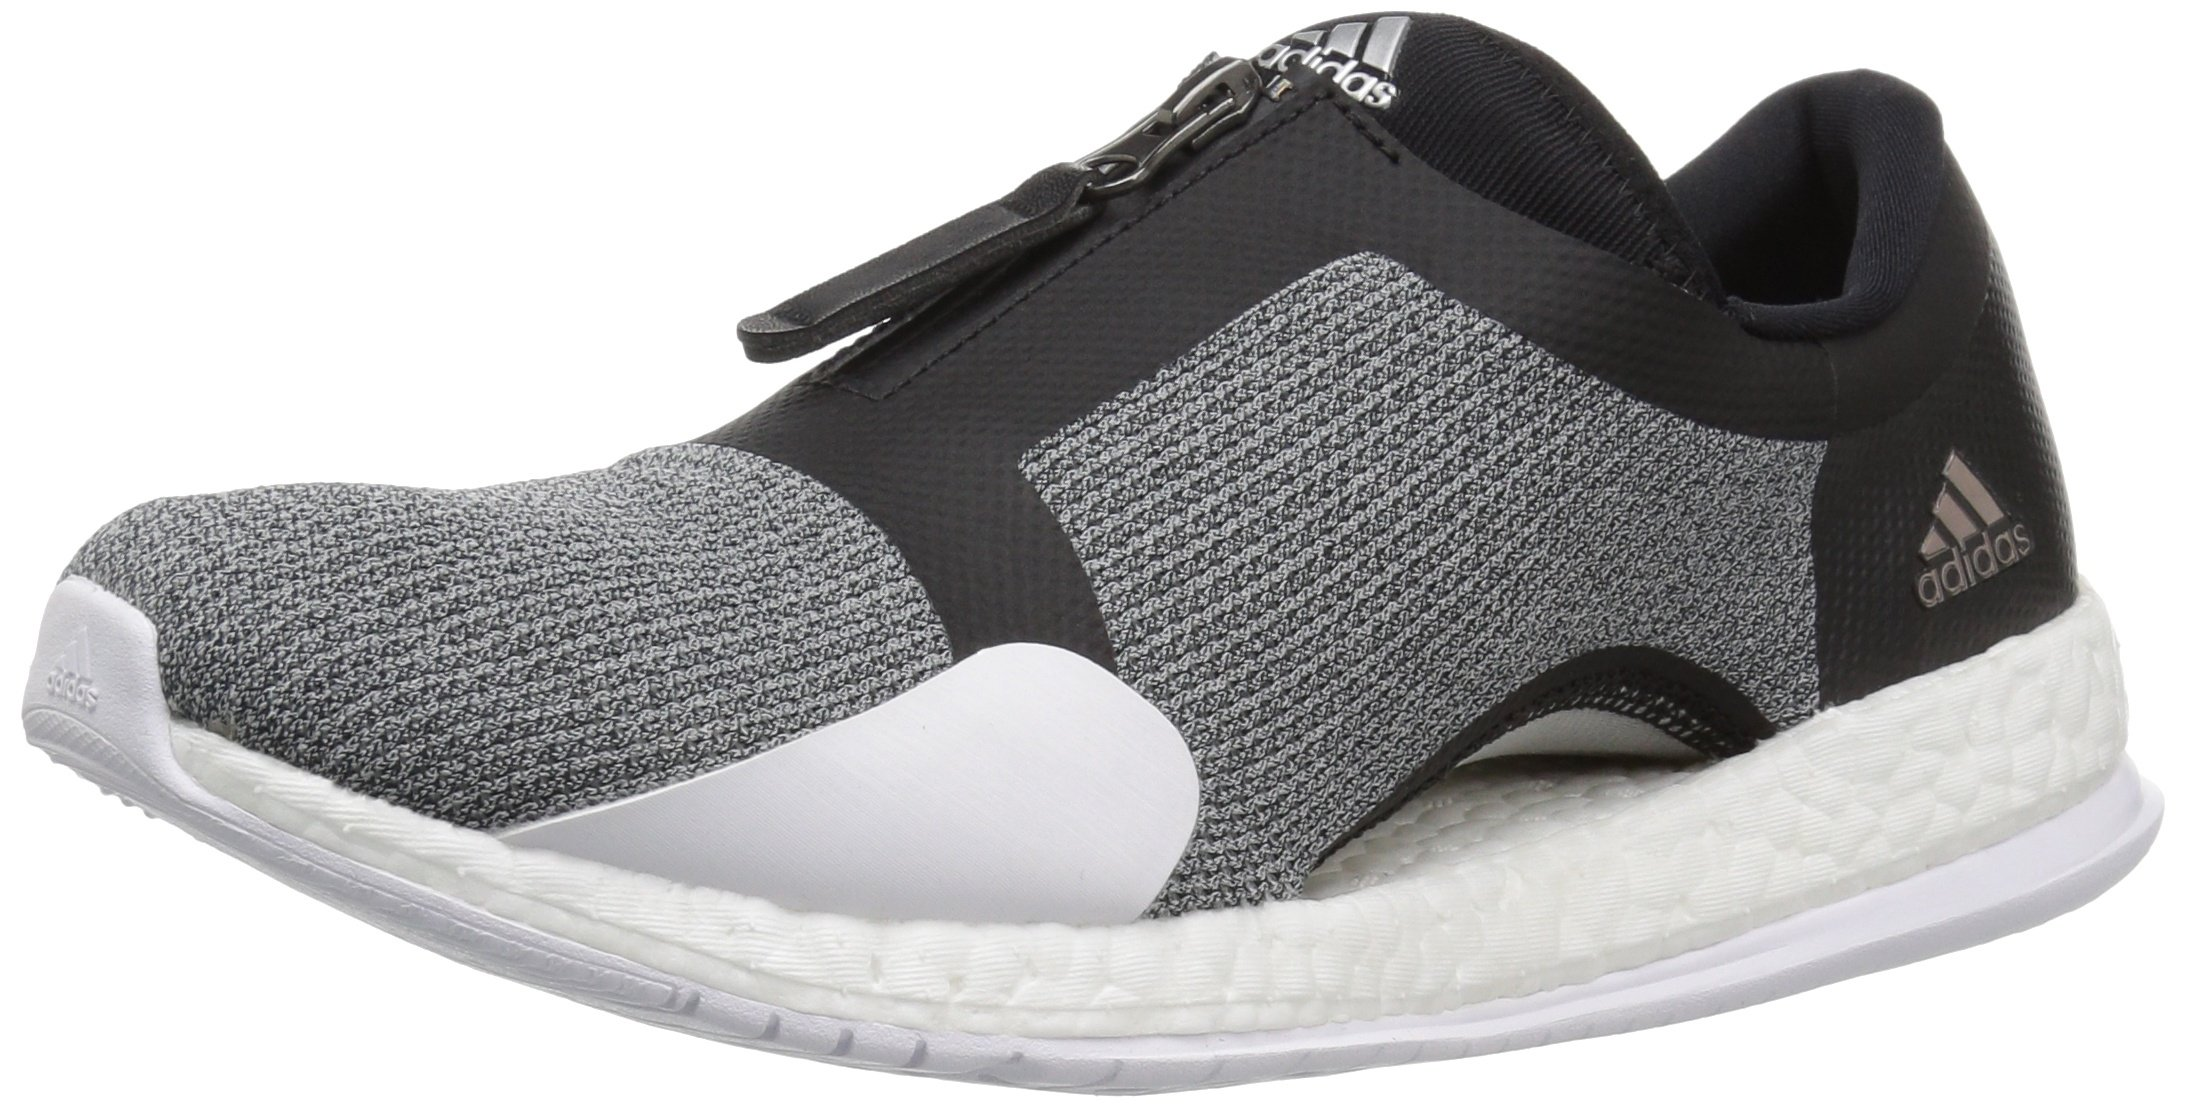 81wwbrAfeAL - adidas Womens Pure Boost x tr Zip Low Top Slip On Fashion Sneakers